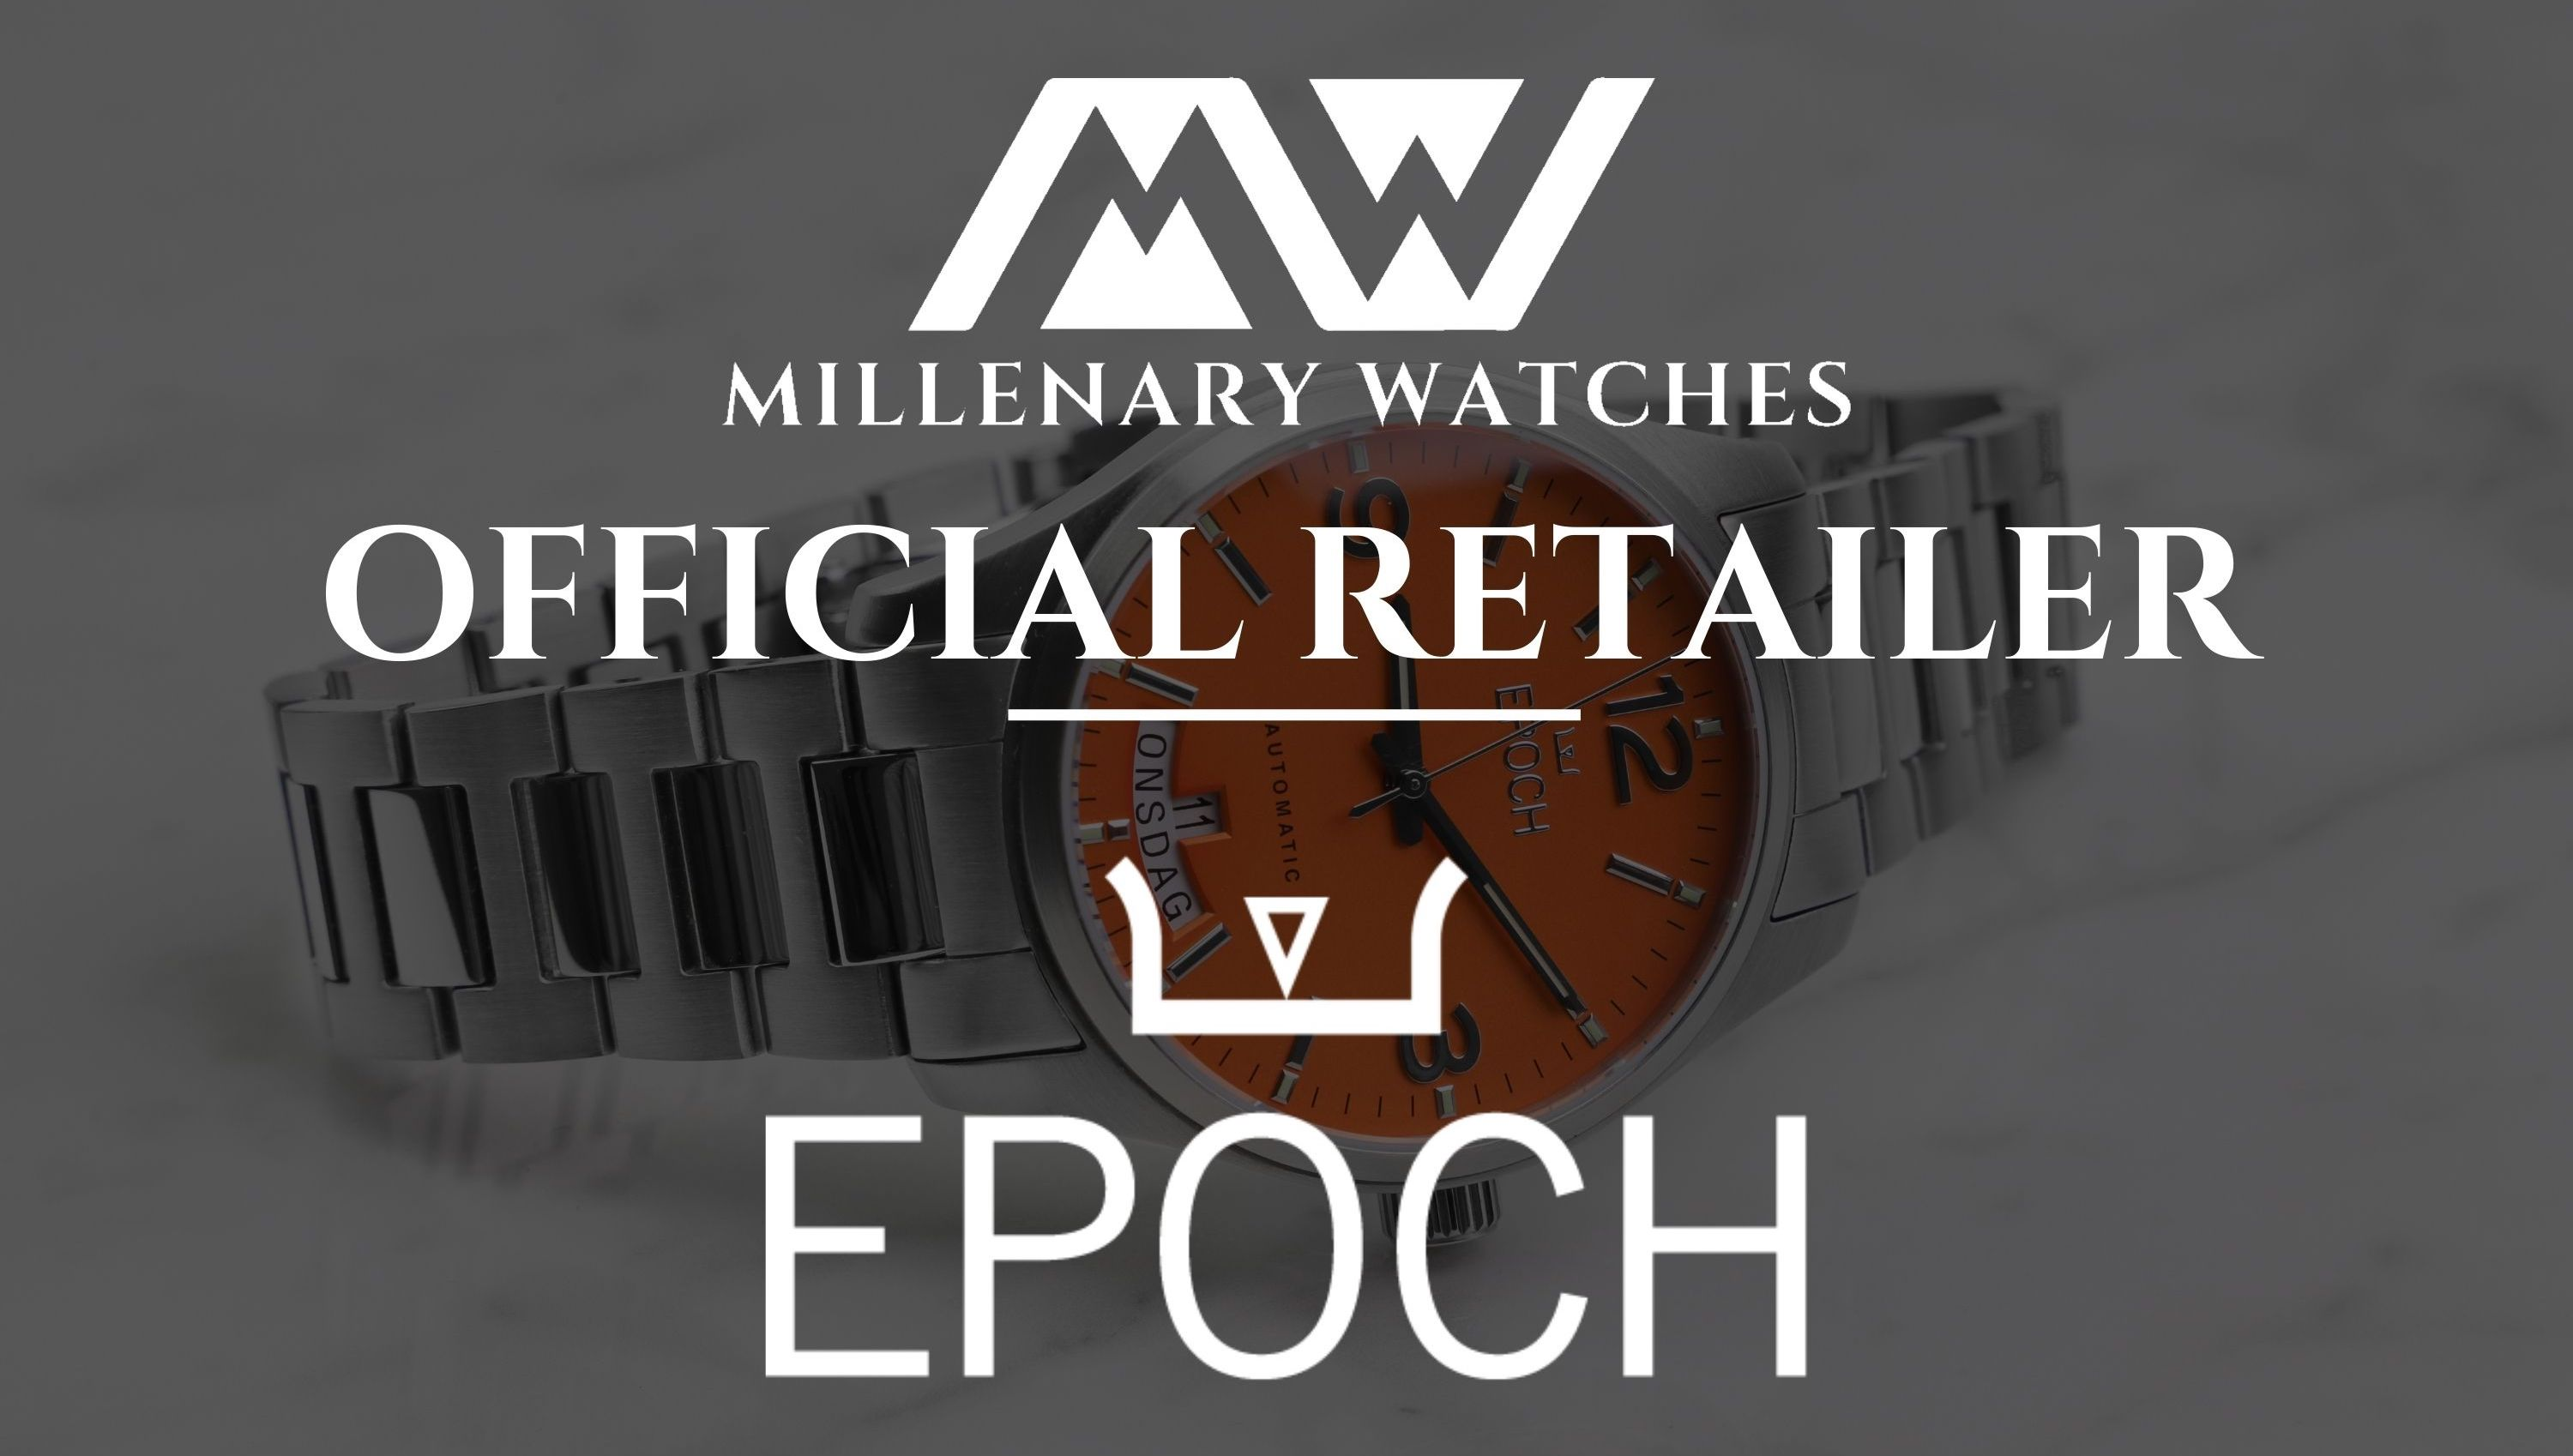 EPOCH WATCHES OFFICIAL RETAILER